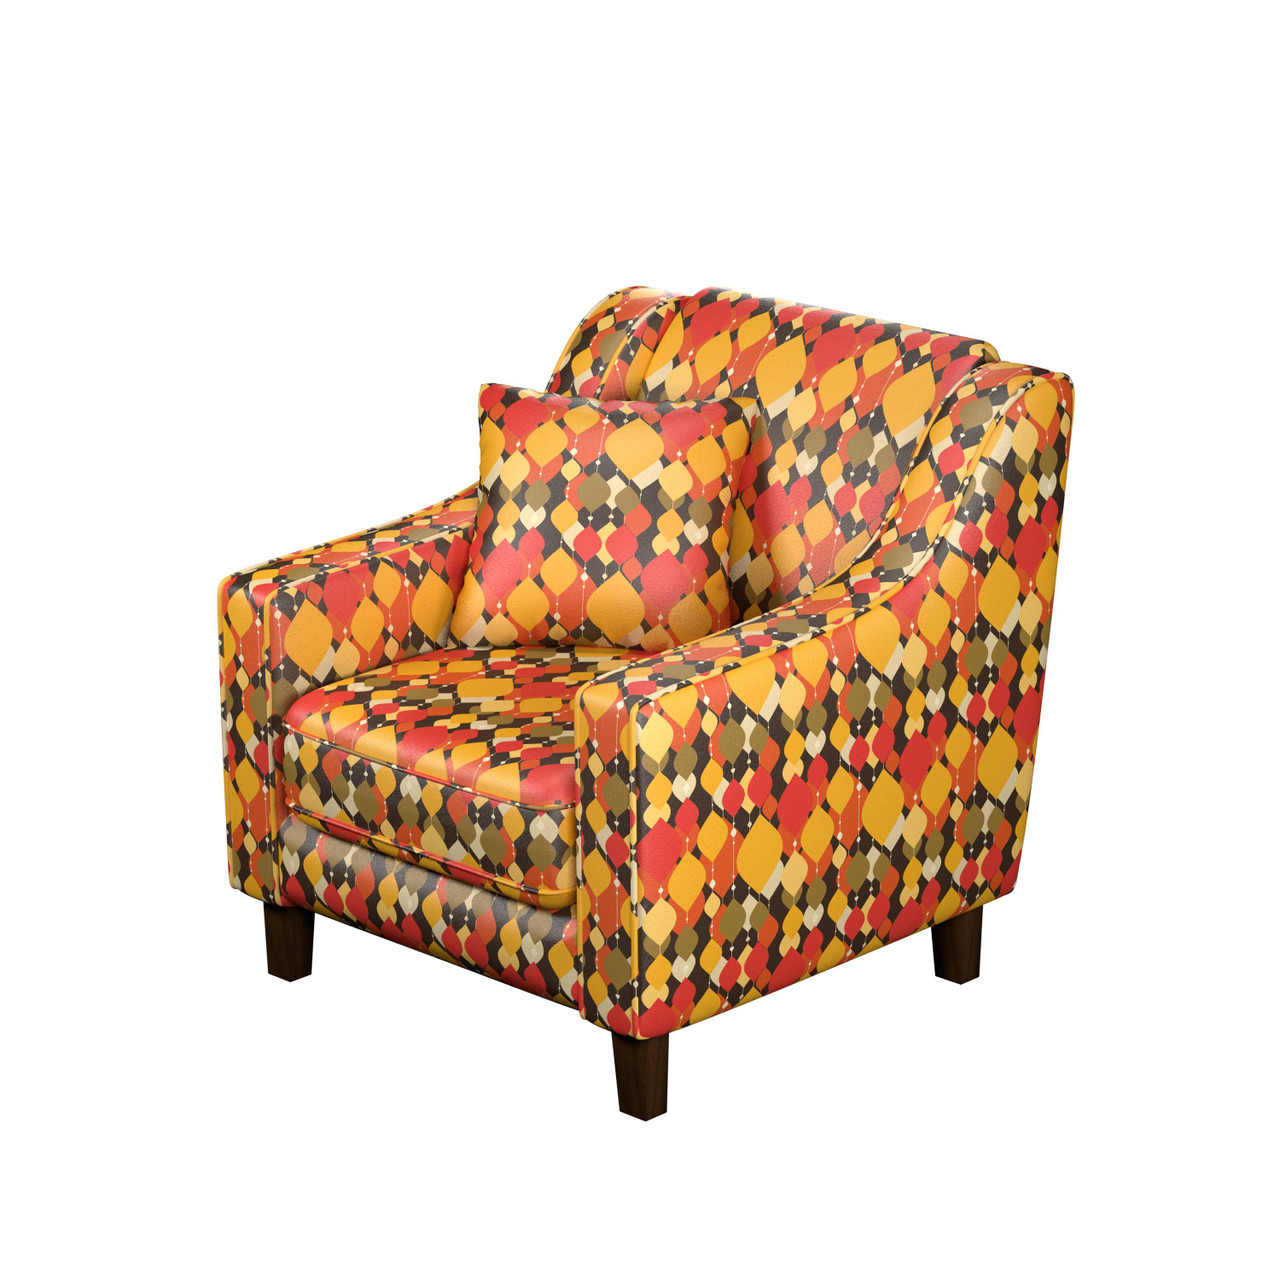 Colors Of Hope Artistic 1 Seater Premium Sofa Chair Leatherette Fabric Pine Wood Structure Fizdi Exclusive